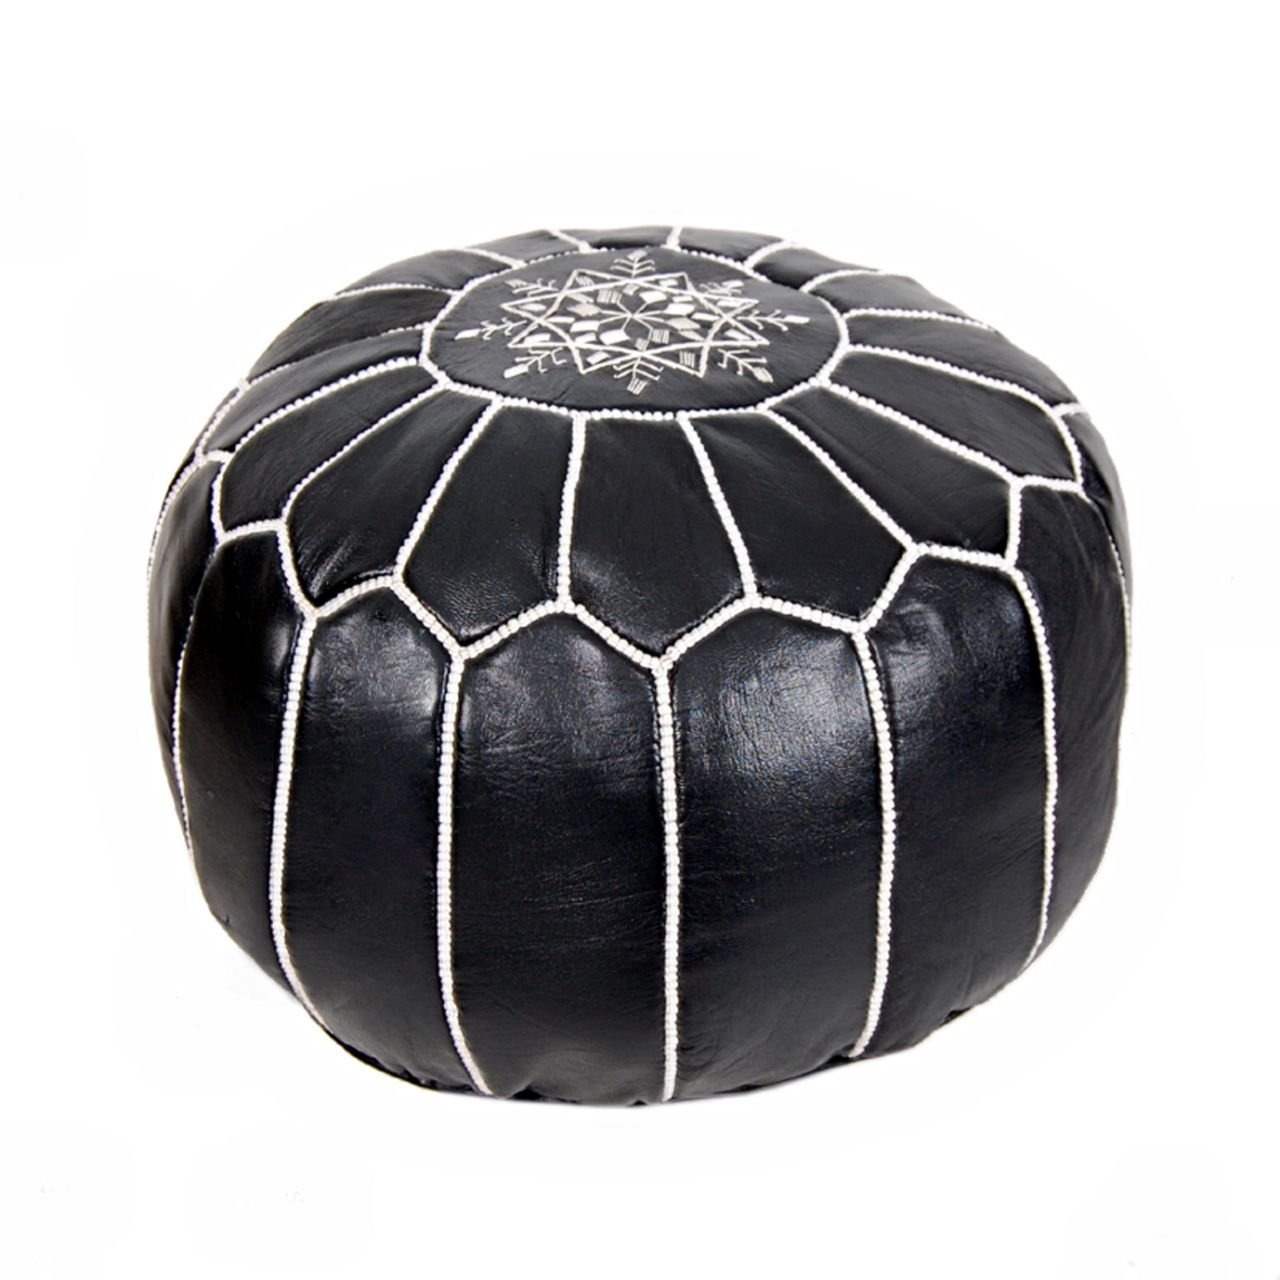 Stuffed Moroccan Leather Pouf Ottoman Footstool (Leather) Genuine Hand-Stitched Seating | Living Room, Bedroom, Sitting Area | Black White